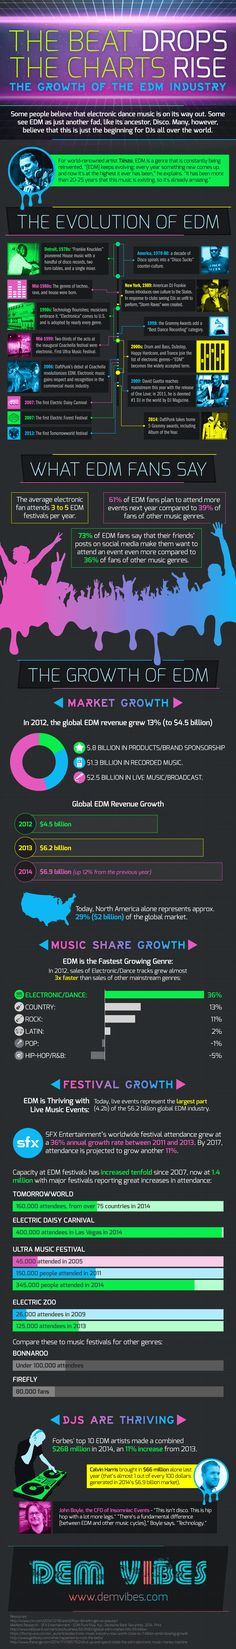 Growth of the EDM Industry #edm #infographic